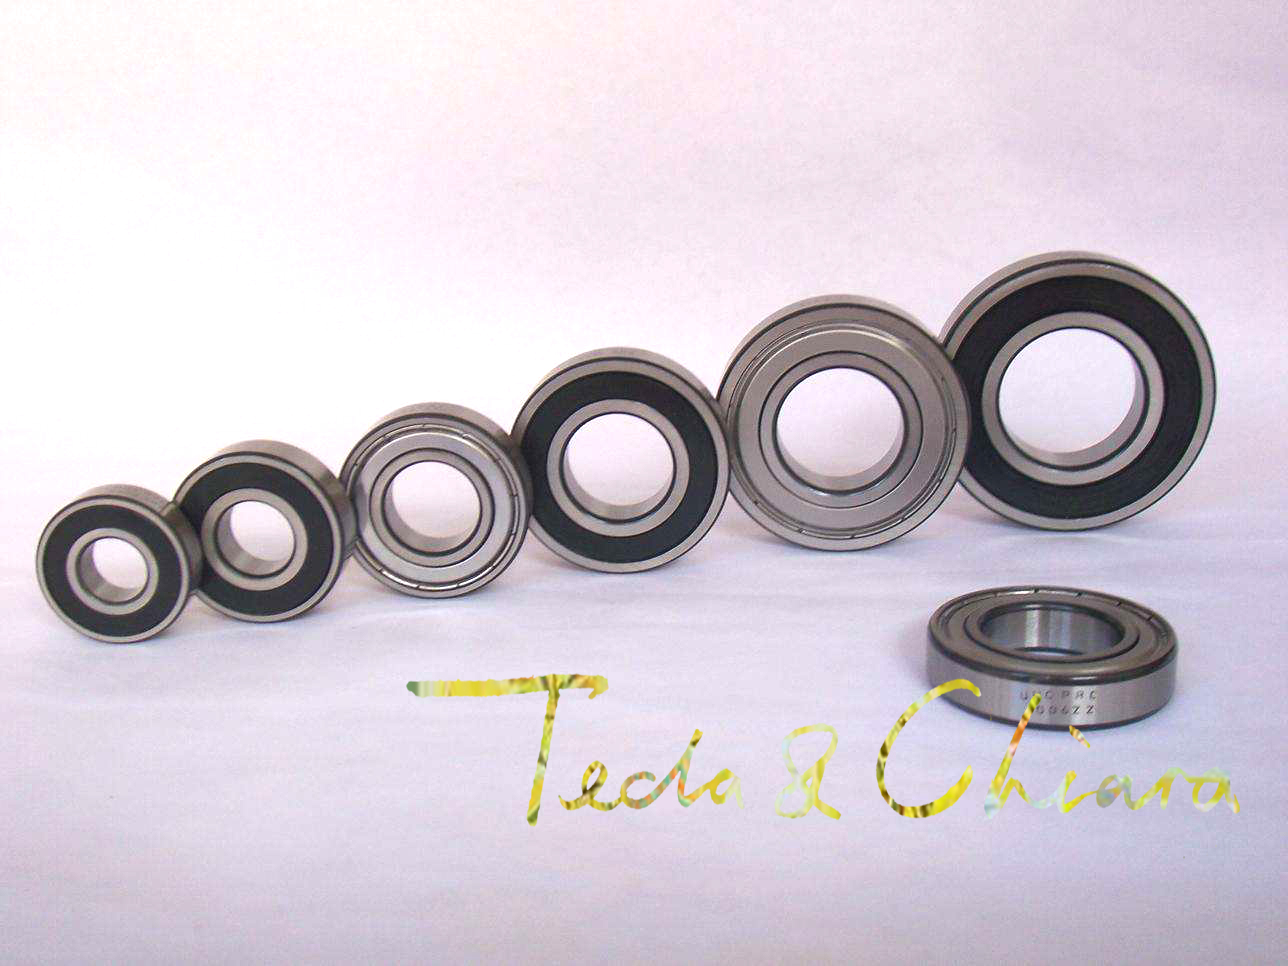 6201 6201ZZ 6201RS 6201-2Z 6201Z 6201-2RS ZZ RS RZ 2RZ Deep Groove Ball Bearings 12 x 32 x 10mm High Quality citilux подвесная люстра citilux базель cl407155